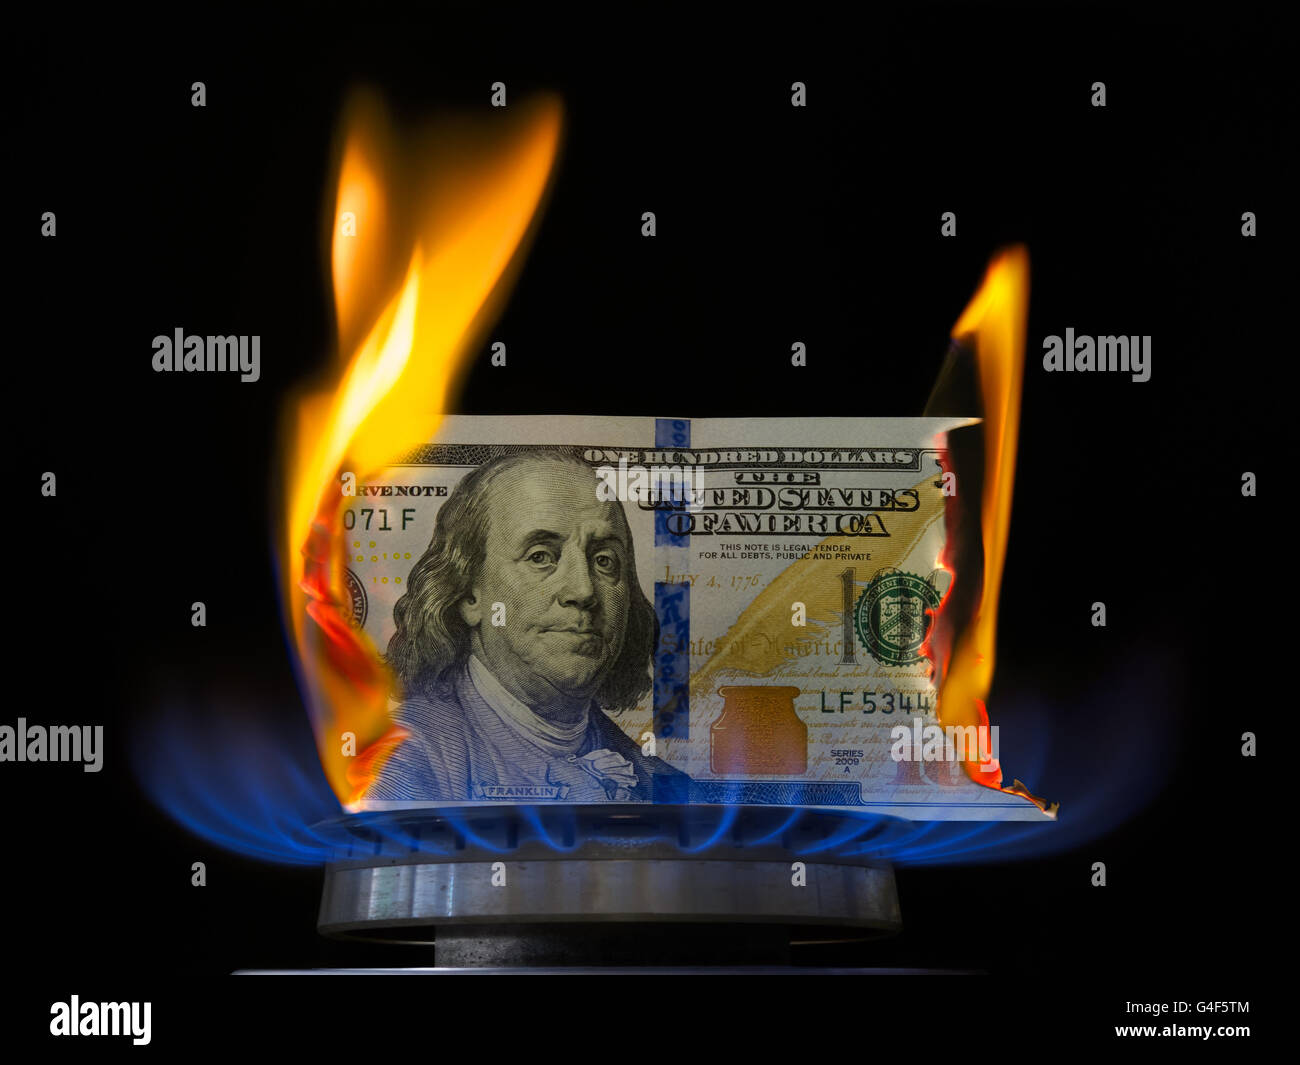 Aflame dollar bill. One hundred dollar bill on fire in gas burner flame. Gas burner burning 100 dollar bill on black - Stock Image